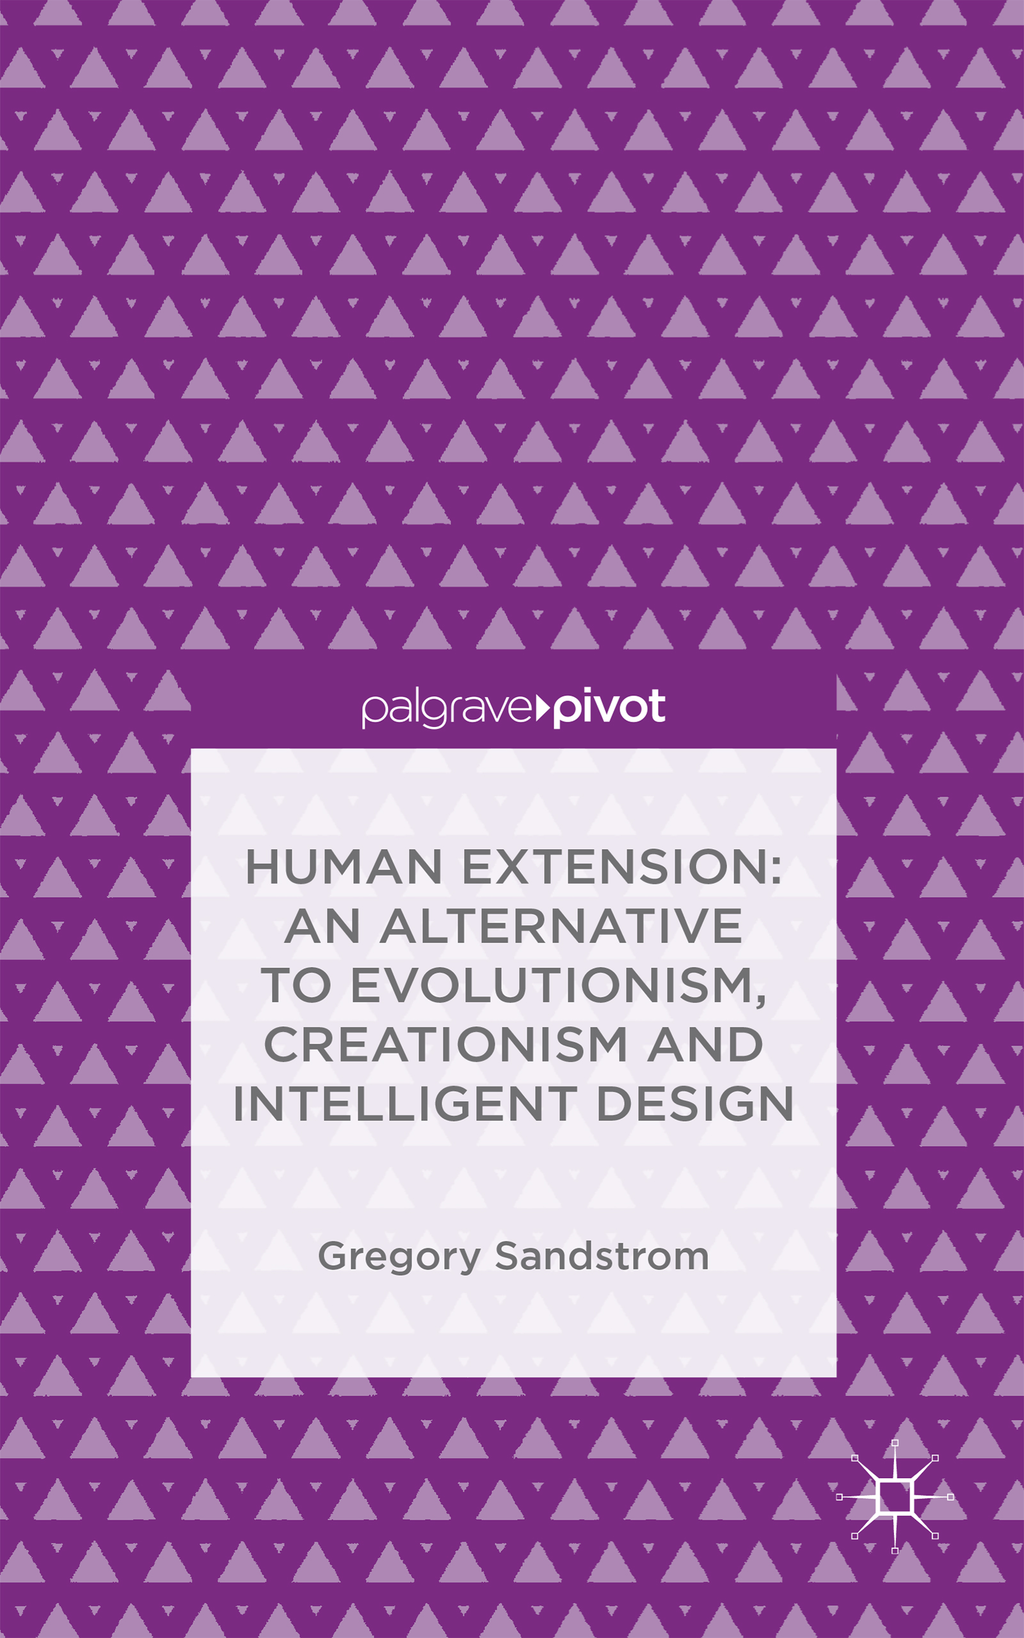 Human Extension: An Alternative to Evolutionism,  Creationism and Intelligent Design